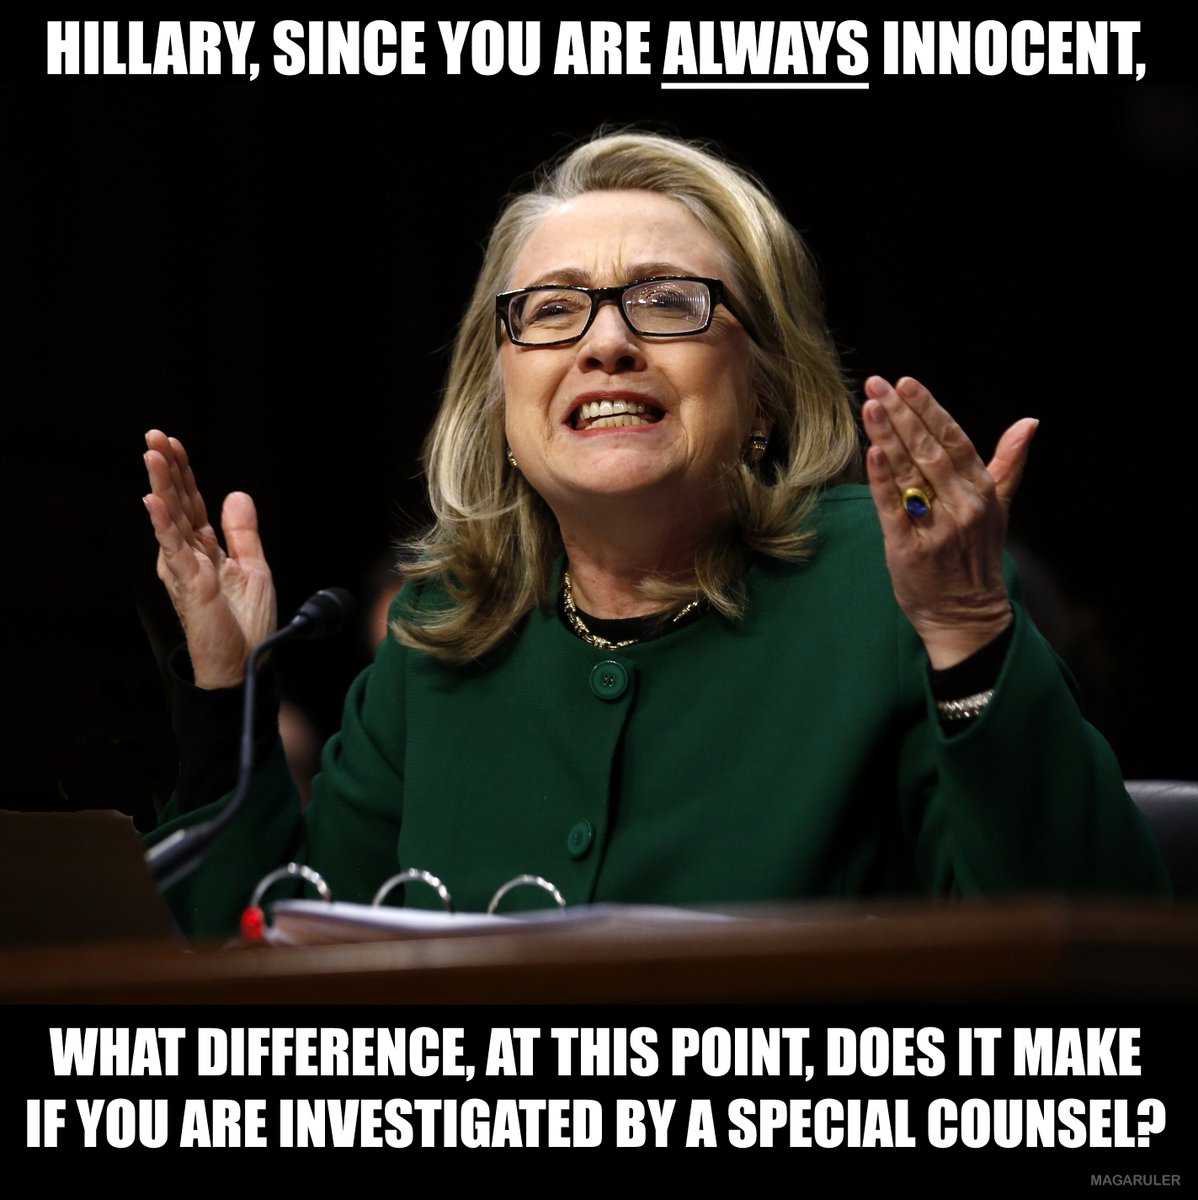 Hillary, since you are ALWAYS innocent, what difference at this point does it make if you are investigated?  #Hillary #HillaryClinton  #LockHerUp<br>http://pic.twitter.com/HedWbaO81j